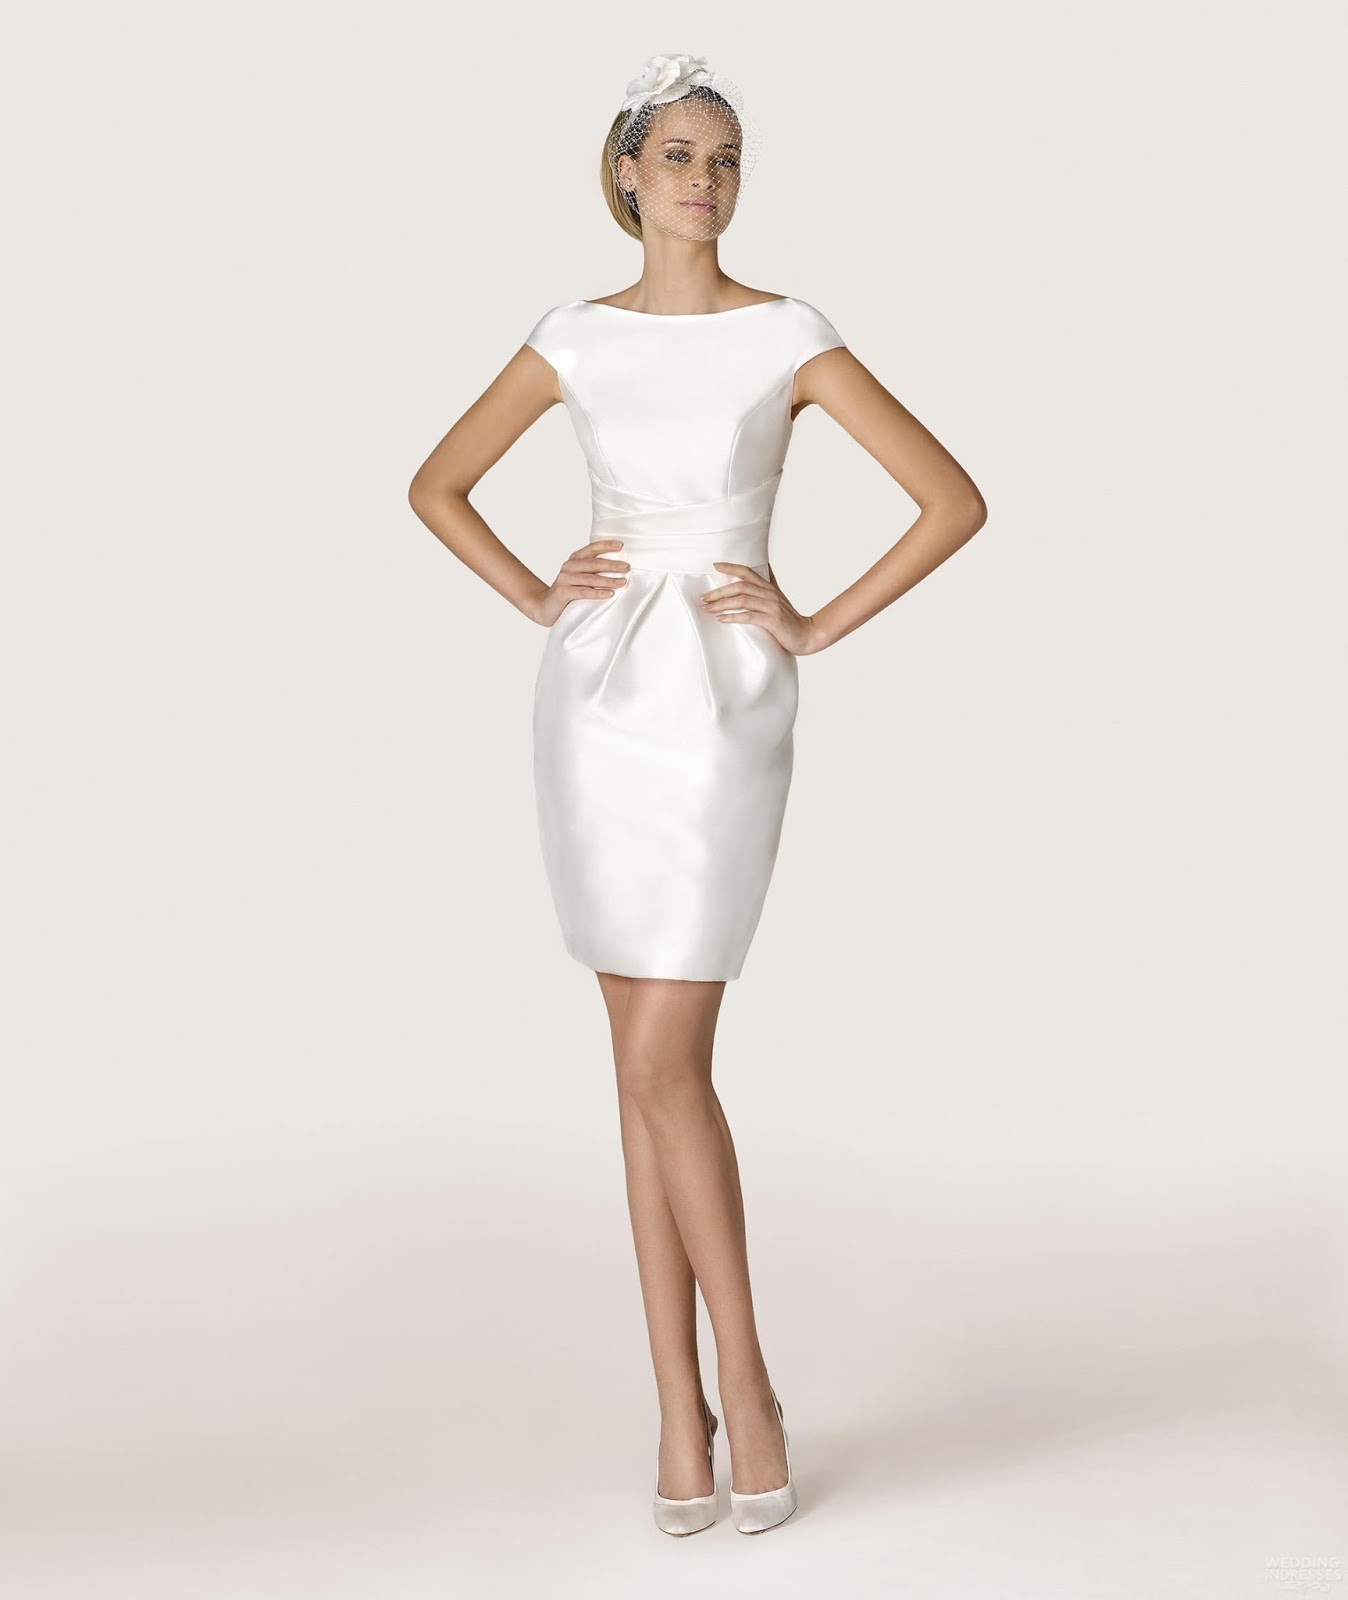 You Can Also Find The Latest Images Of Short Wedding Dresses For Older Women In Gallery Below